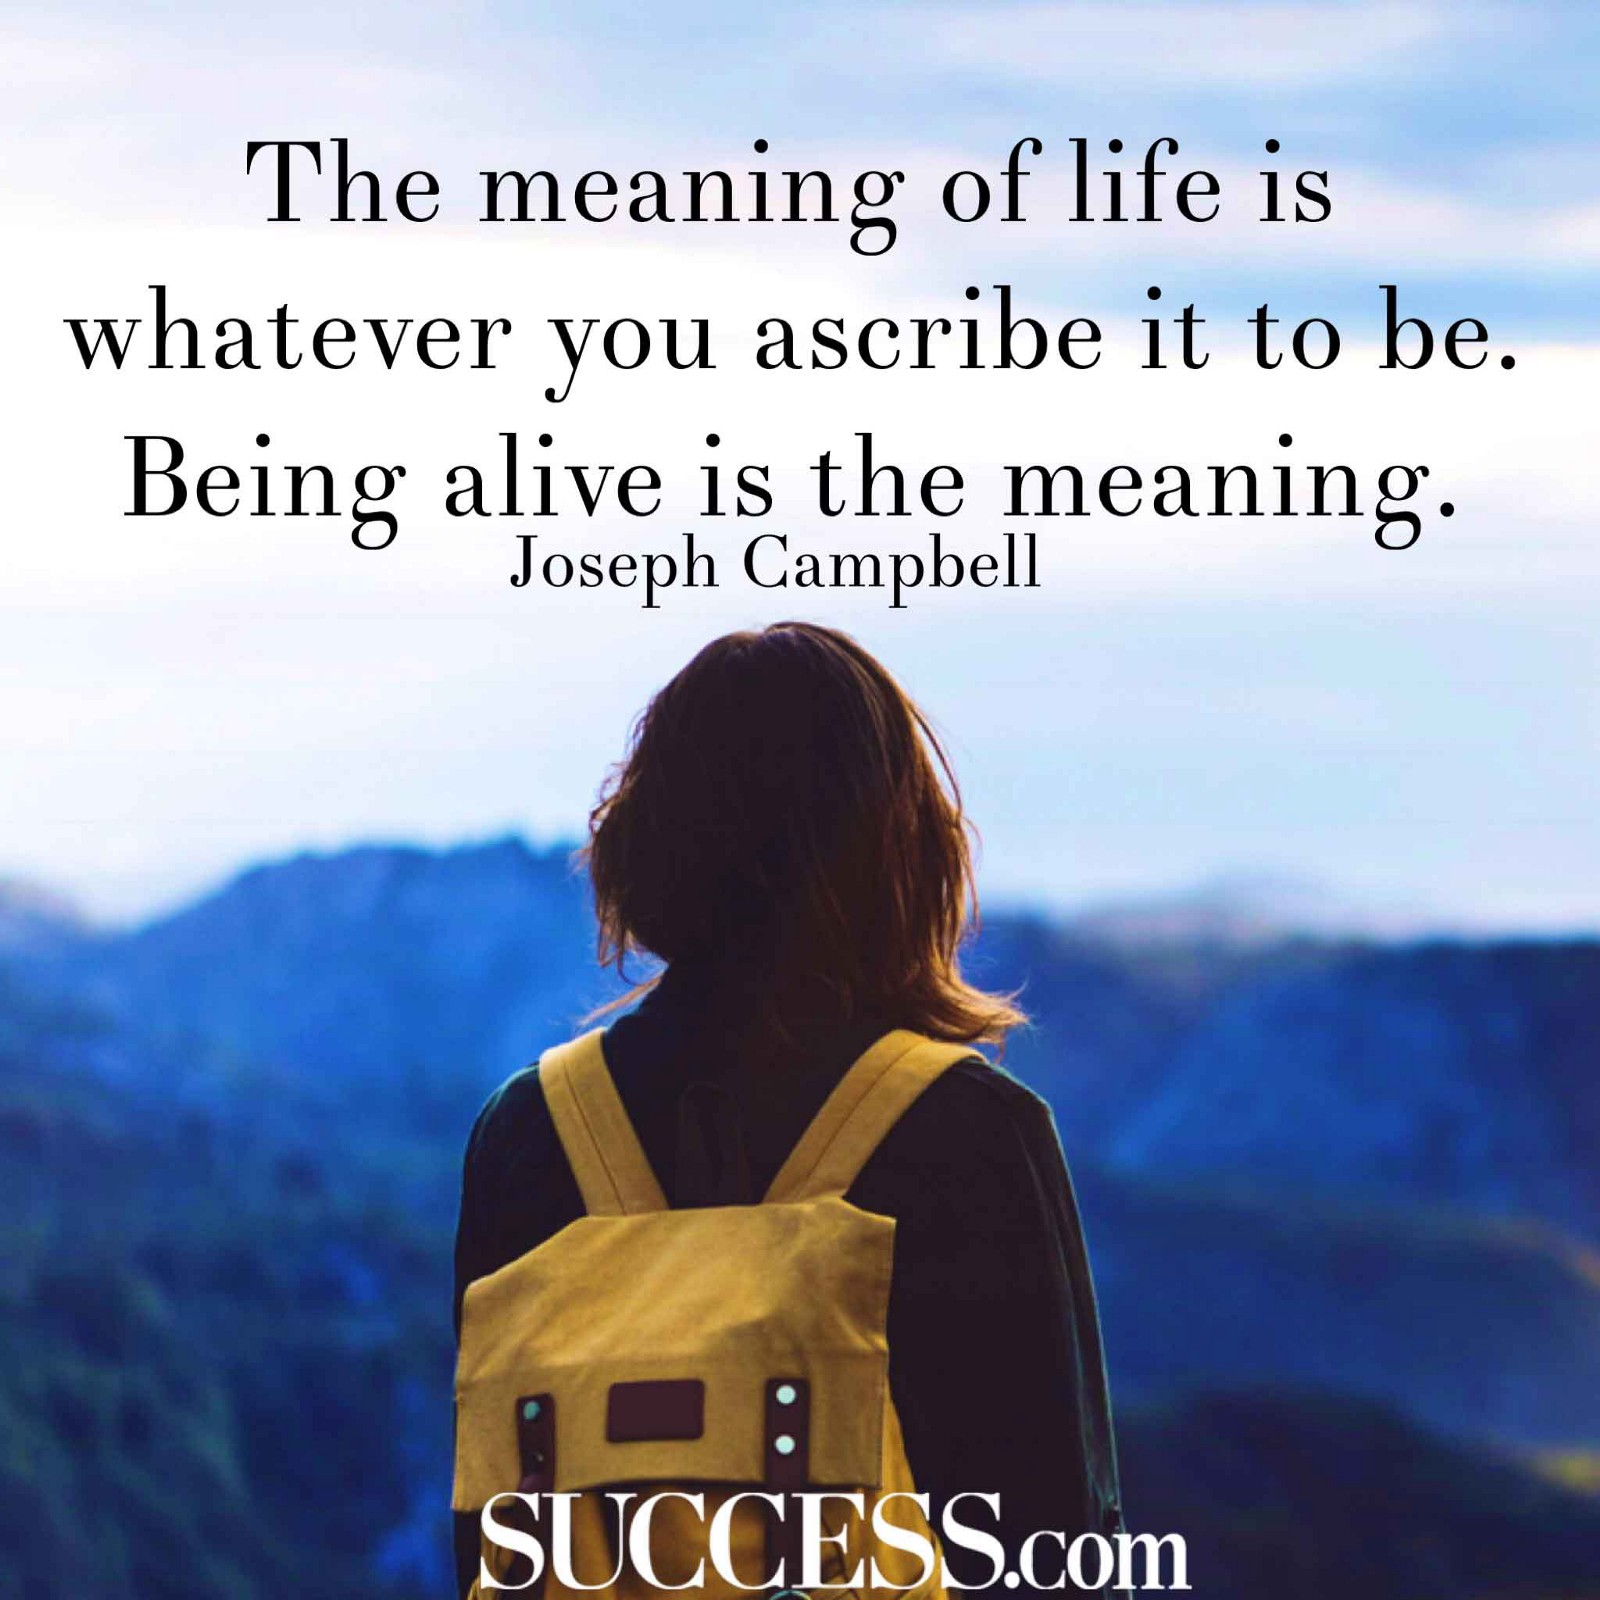 Philosophers Quotes On The Meaning Of Life Classy The Meaning Of Life In 15 Wise Quotes  Success Magazine  Medium